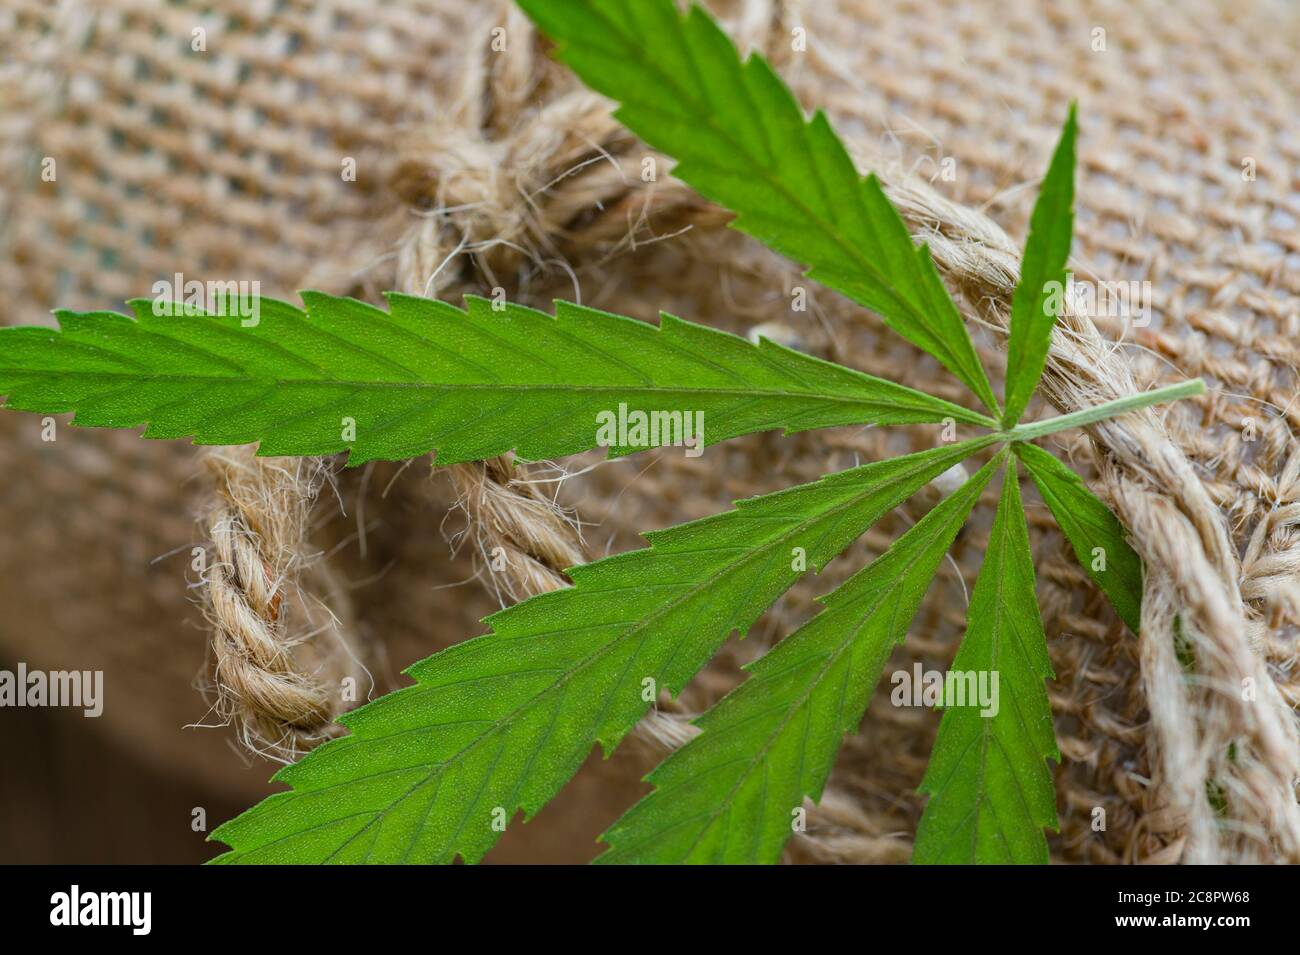 Hemp Thread Medical Marijuana Leaves On Wooden Background Using Cannabis In Fabric Production And Industry Stock Photo Alamy